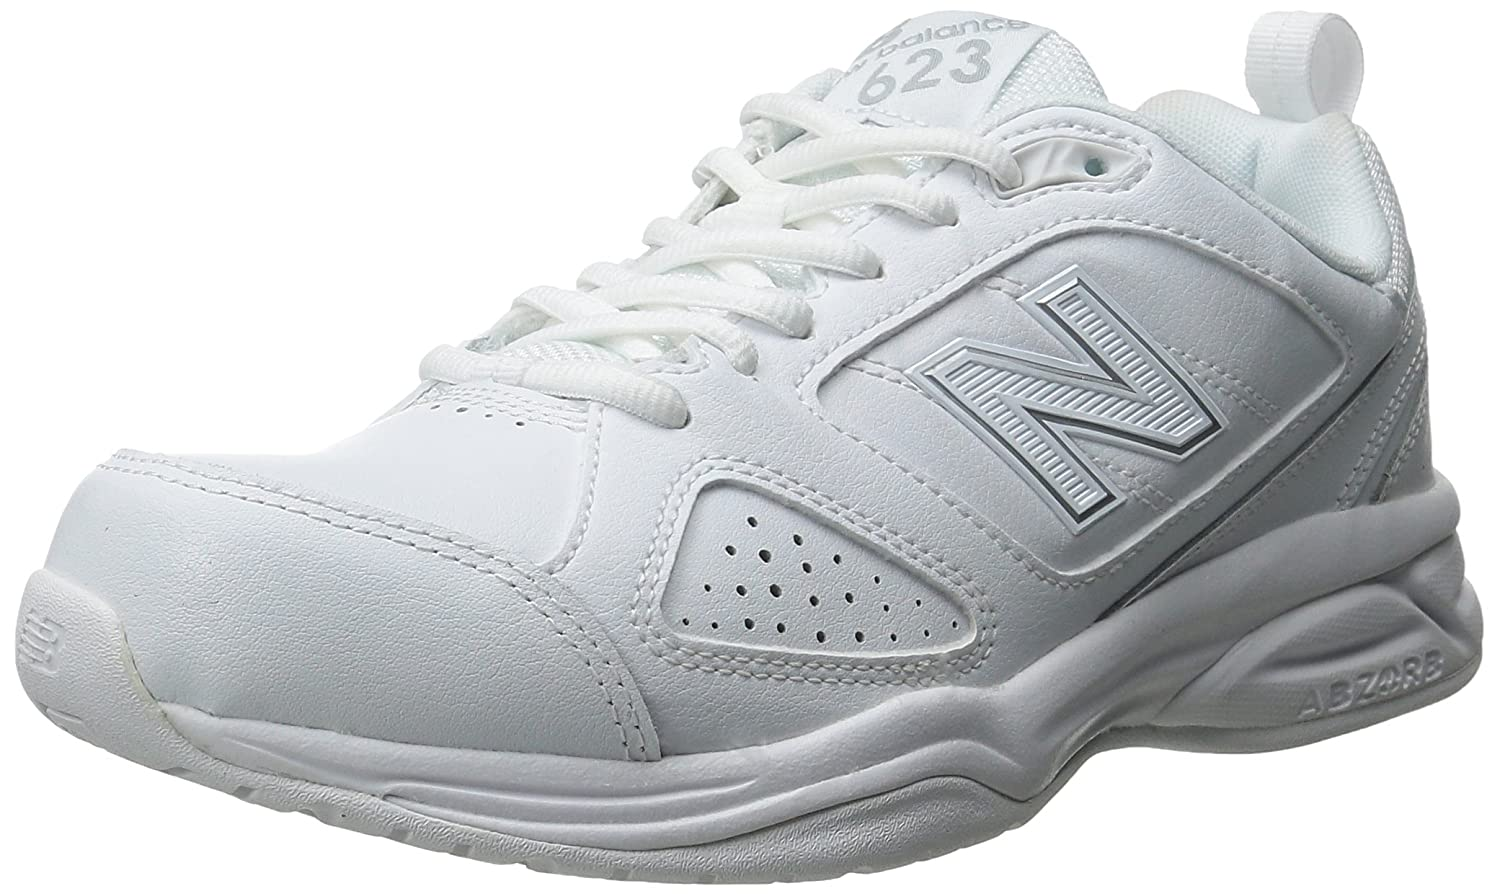 New Balance Women's WX623v3 Casual Comfort Training Shoe, WhiteSilver, 8 D US